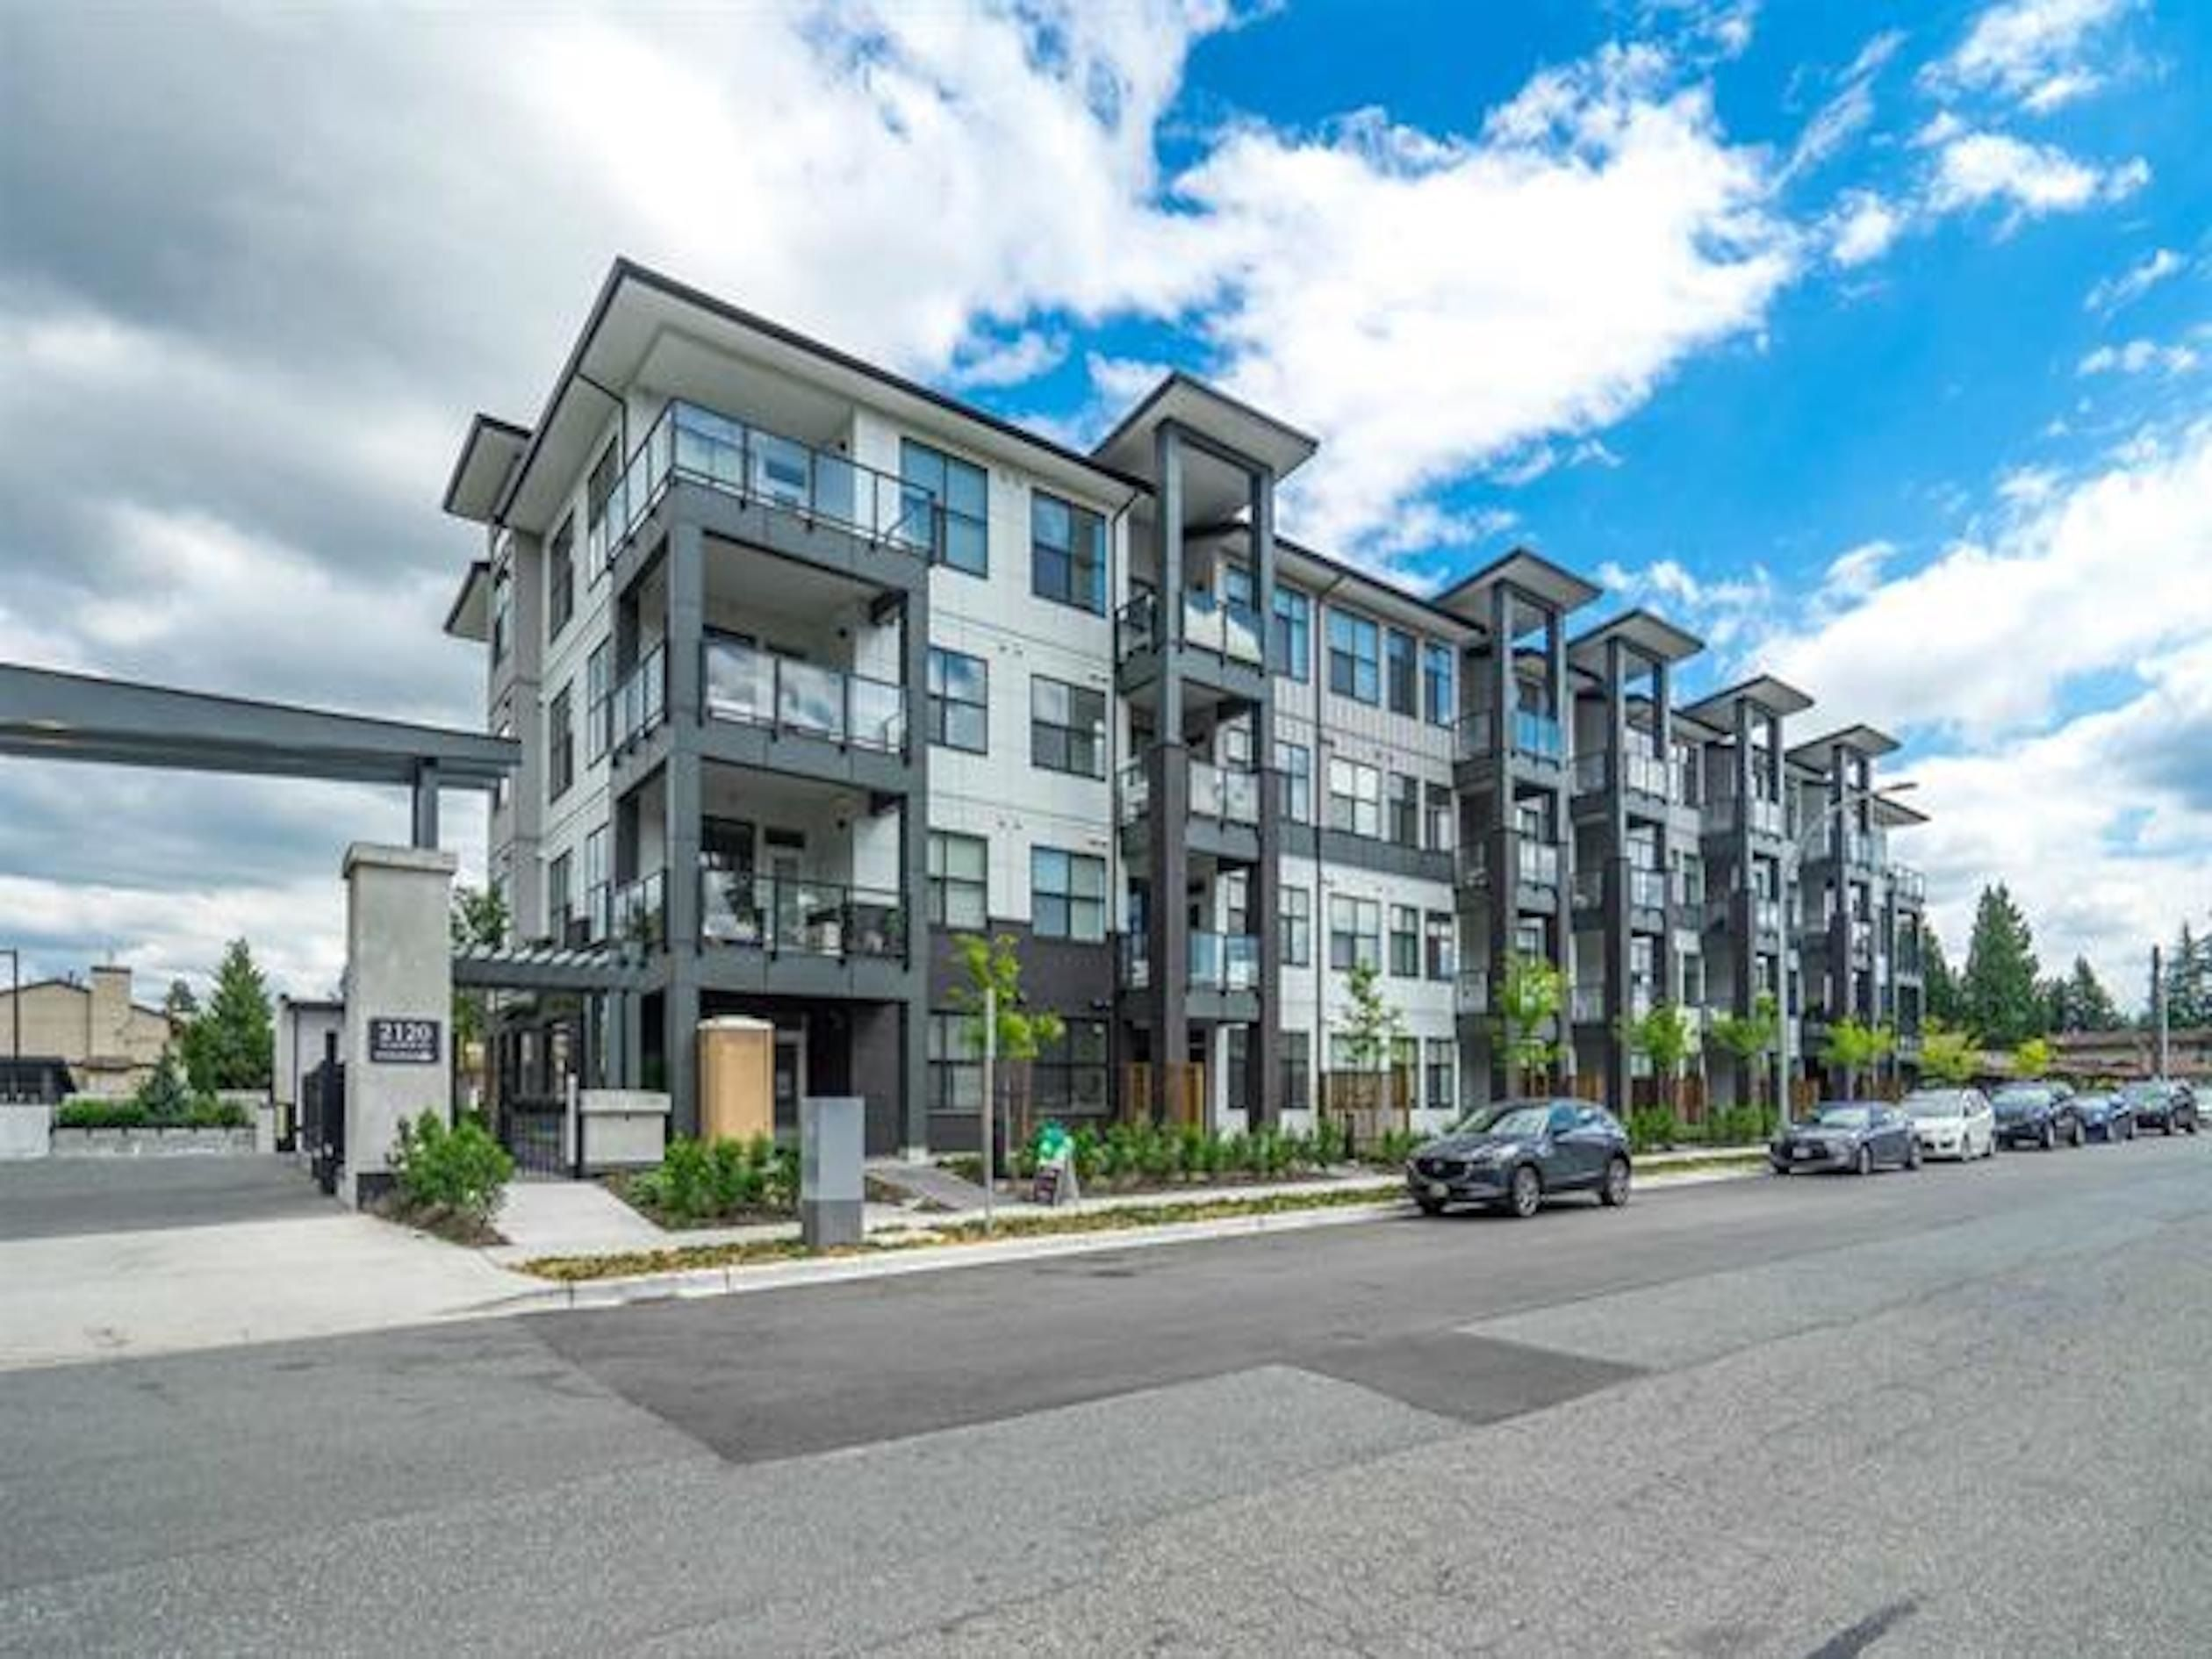 """Main Photo: 112 2120 GLADWIN Road in Abbotsford: Central Abbotsford Condo for sale in """"Onyx at Mahogany"""" : MLS®# R2617178"""